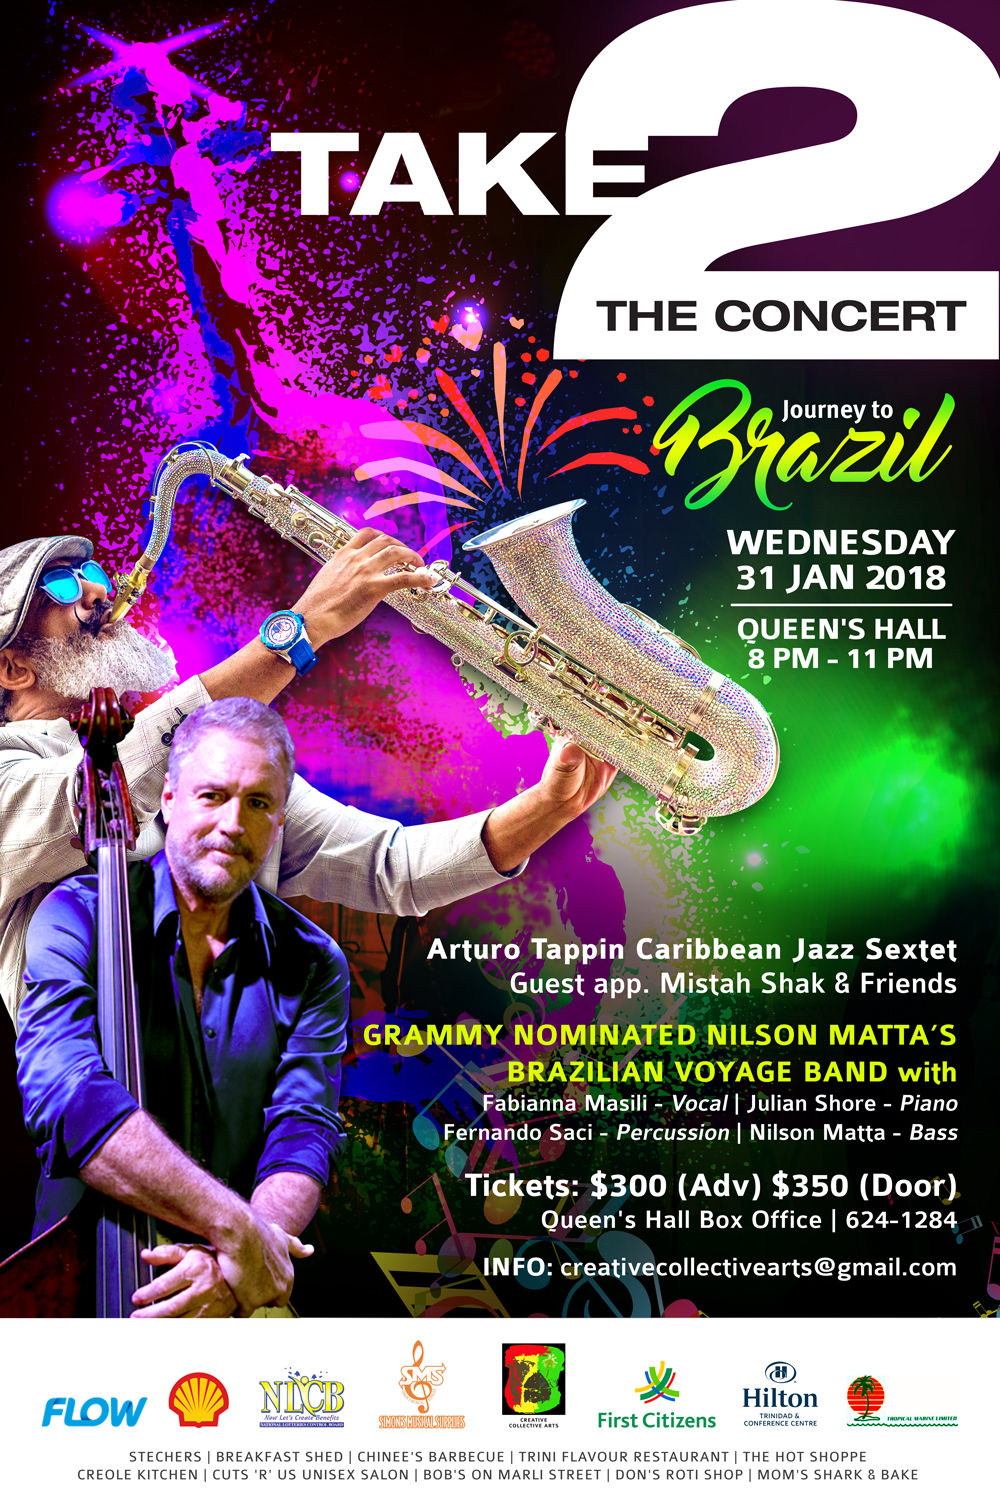 Take 2 - Journey to Brazil - Queens Hall